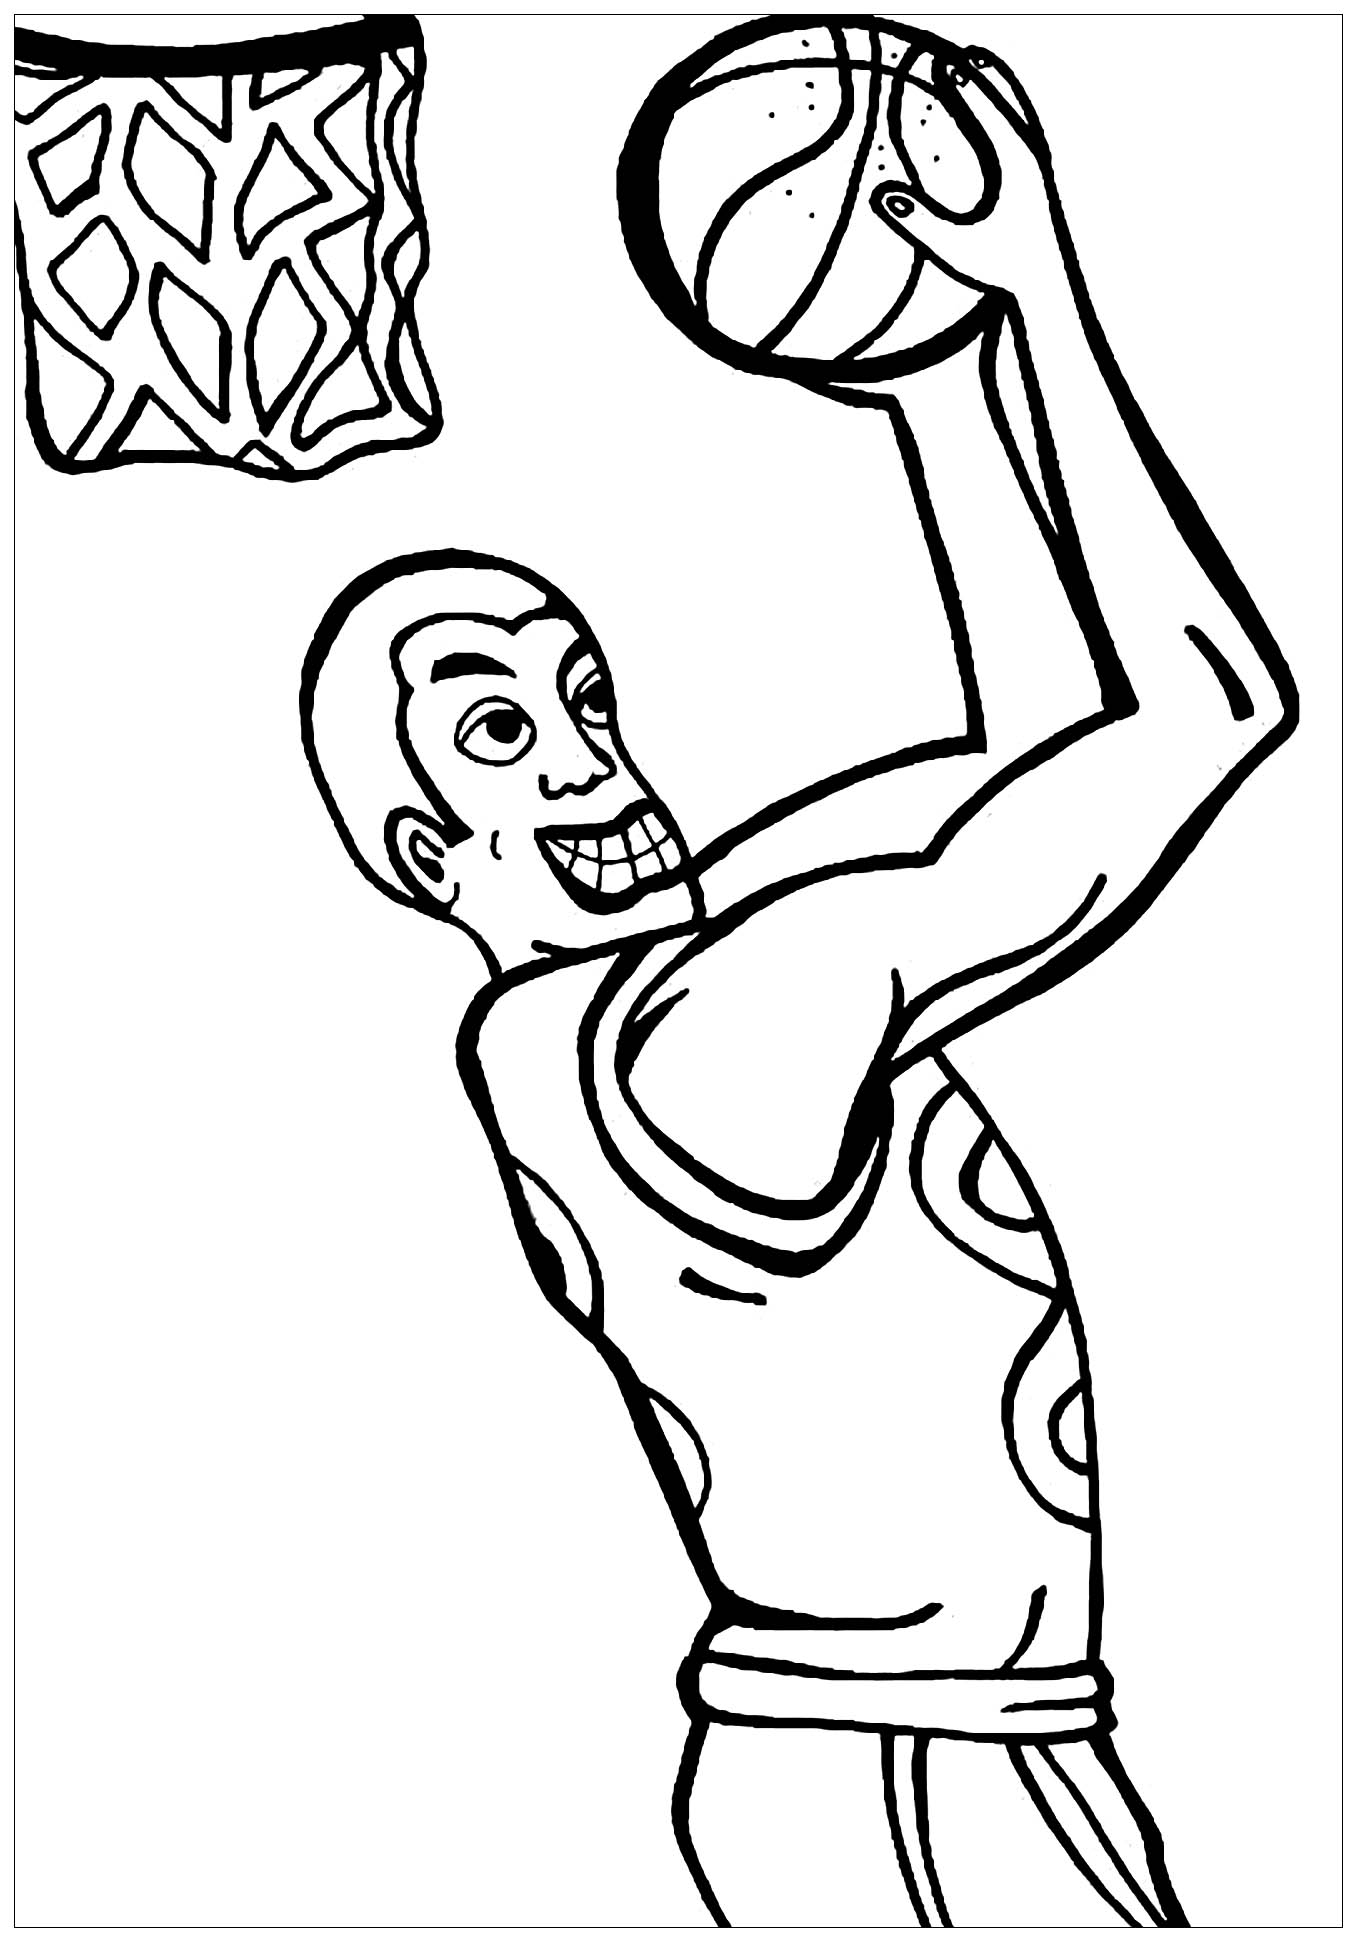 Funny Basketball coloring page for kids